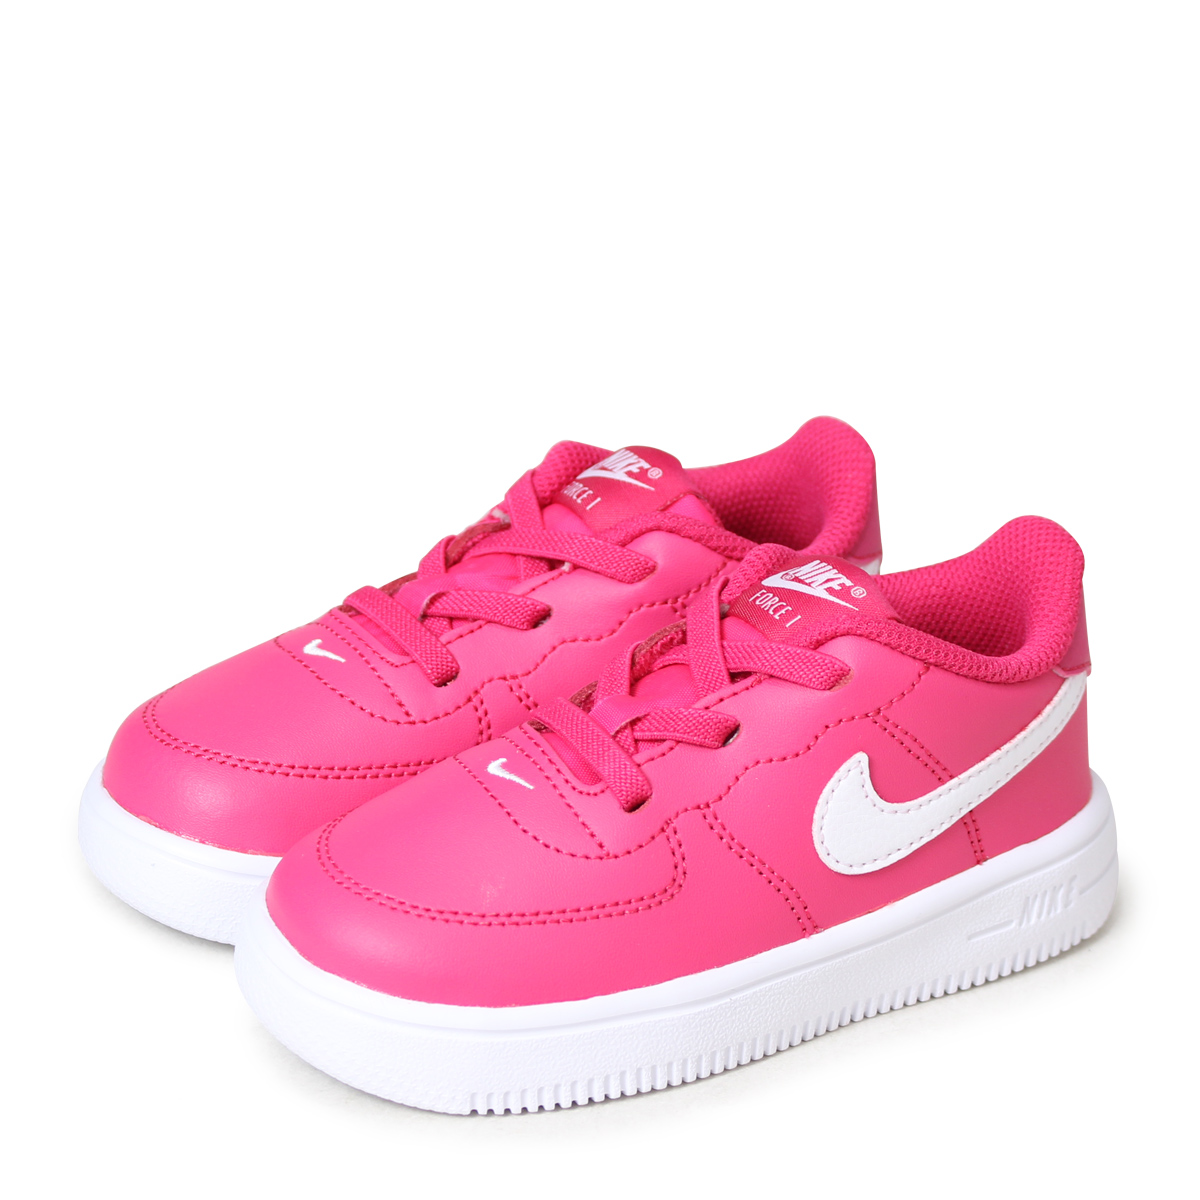 ALLSPORTS  NIKE FORCE 1 TD Nike force 1 baby sneakers 905 9d2ef01bb0cb